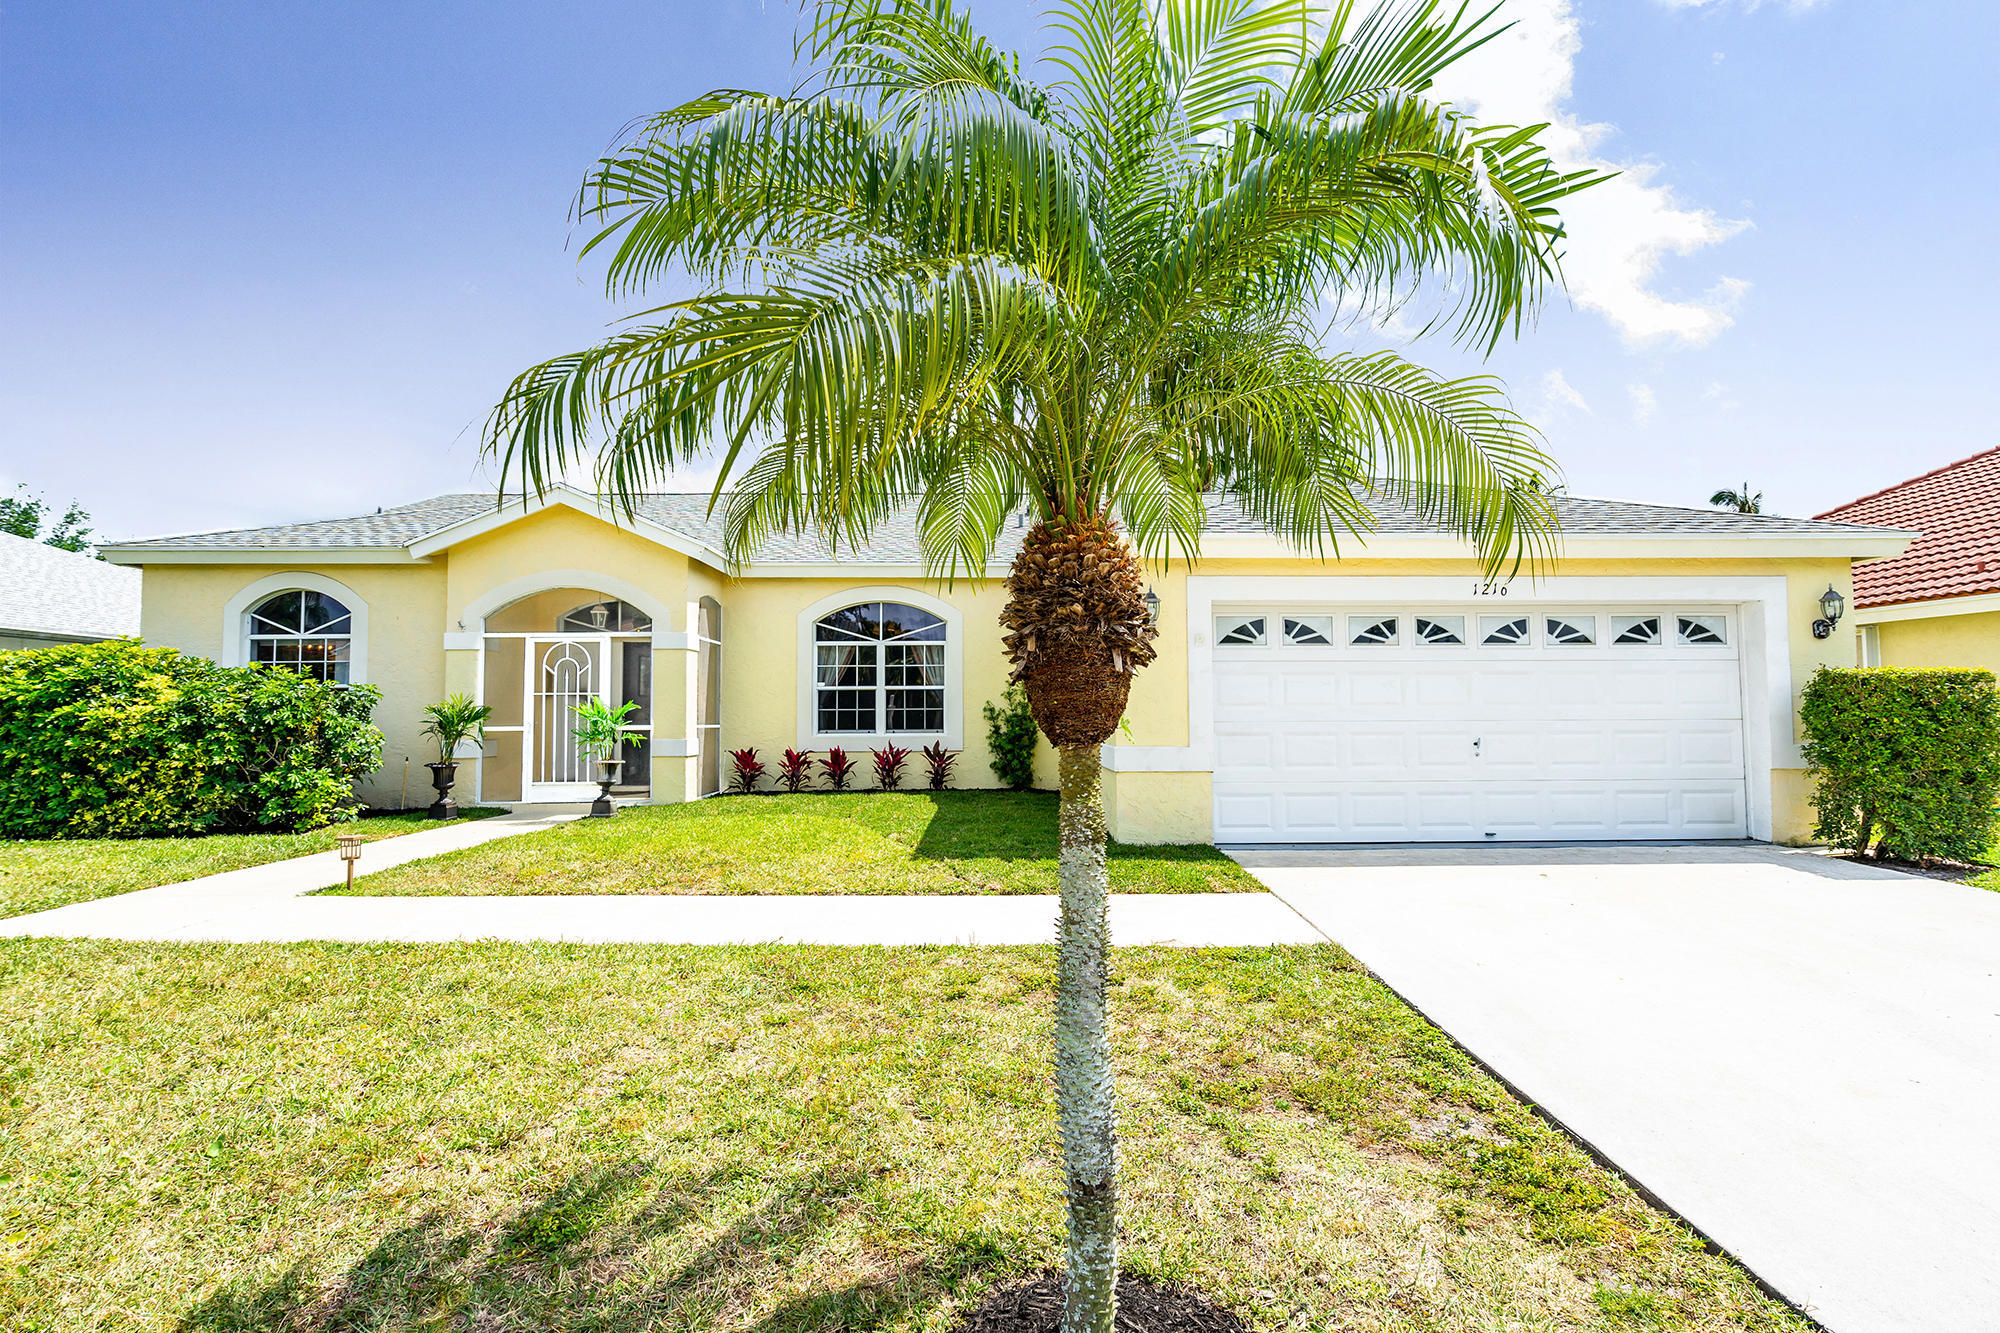 1216 Lake Breeze Drive, Wellington, Florida 33414, 4 Bedrooms Bedrooms, ,2 BathroomsBathrooms,Single Family,For Rent,Lake Breeze,RX-10653452